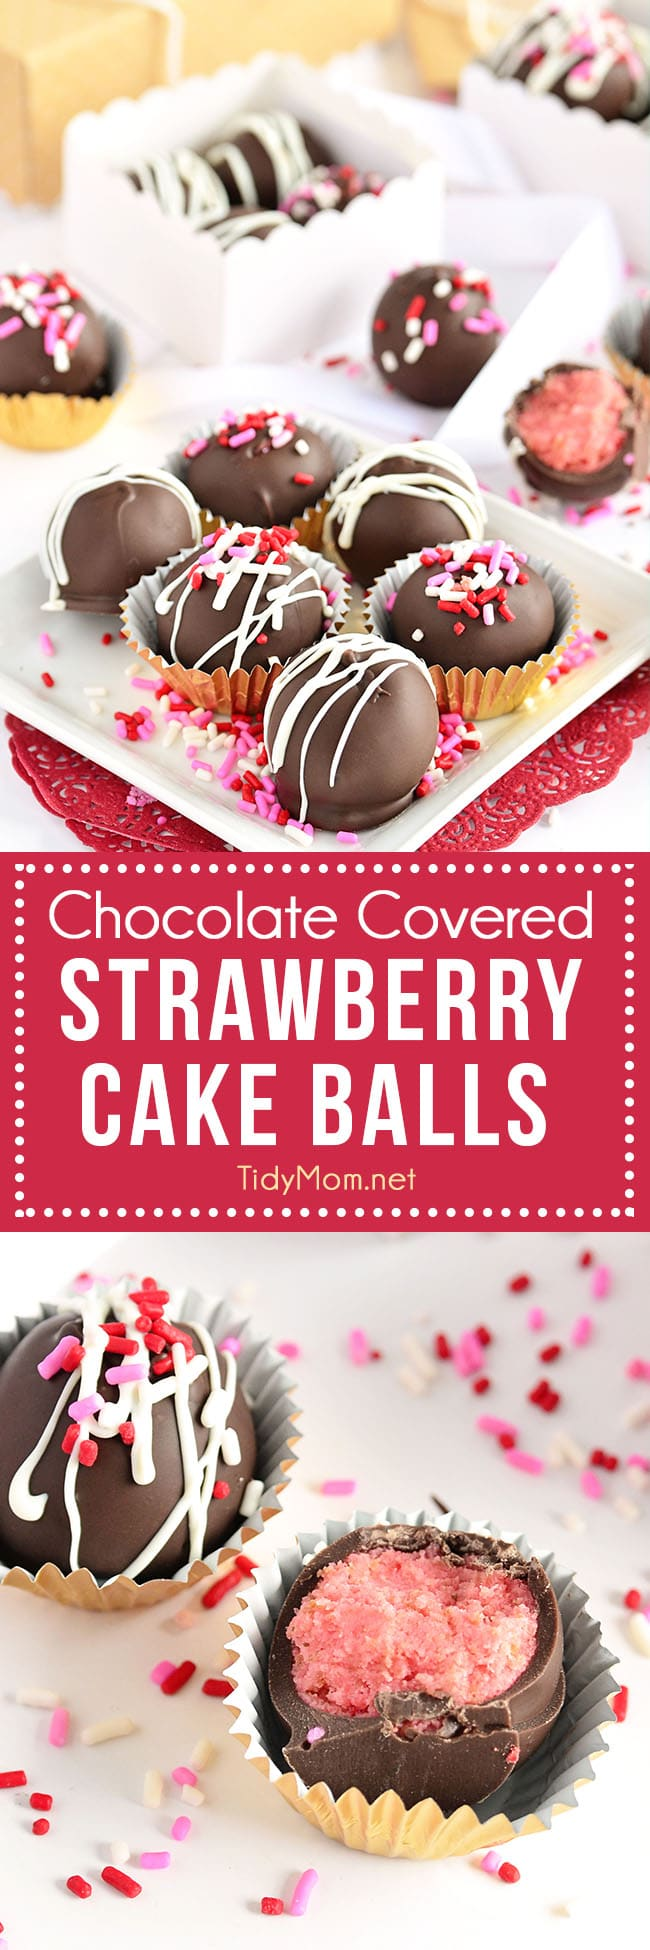 Chocolate Covered Strawberry Cake Balls recipe at TidyMom.net perfect for Valentines Day gift or any occasion. #strawberry #chocolate #valentinesday #cakeballs #truffles